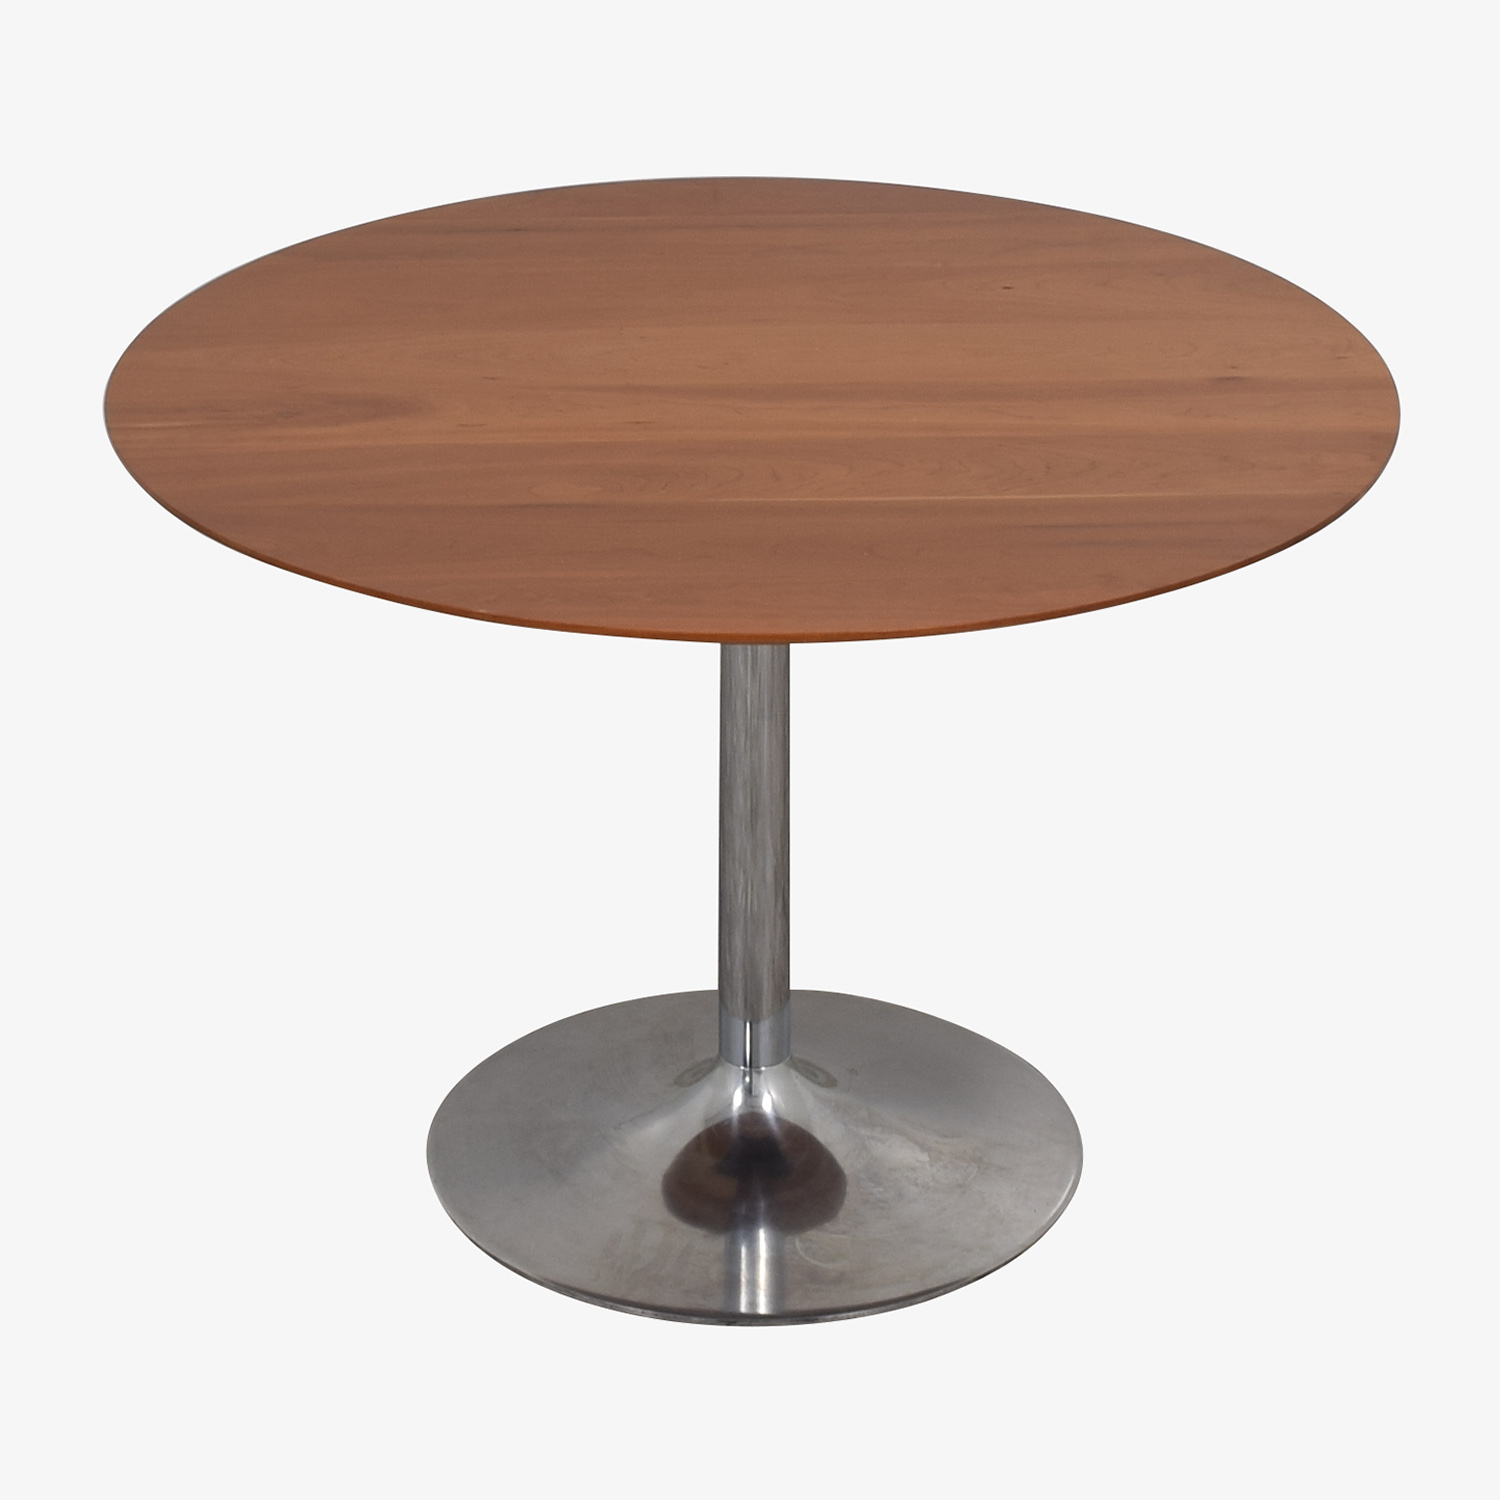 Room & Board Room & Board Aria Round Table light brown wood